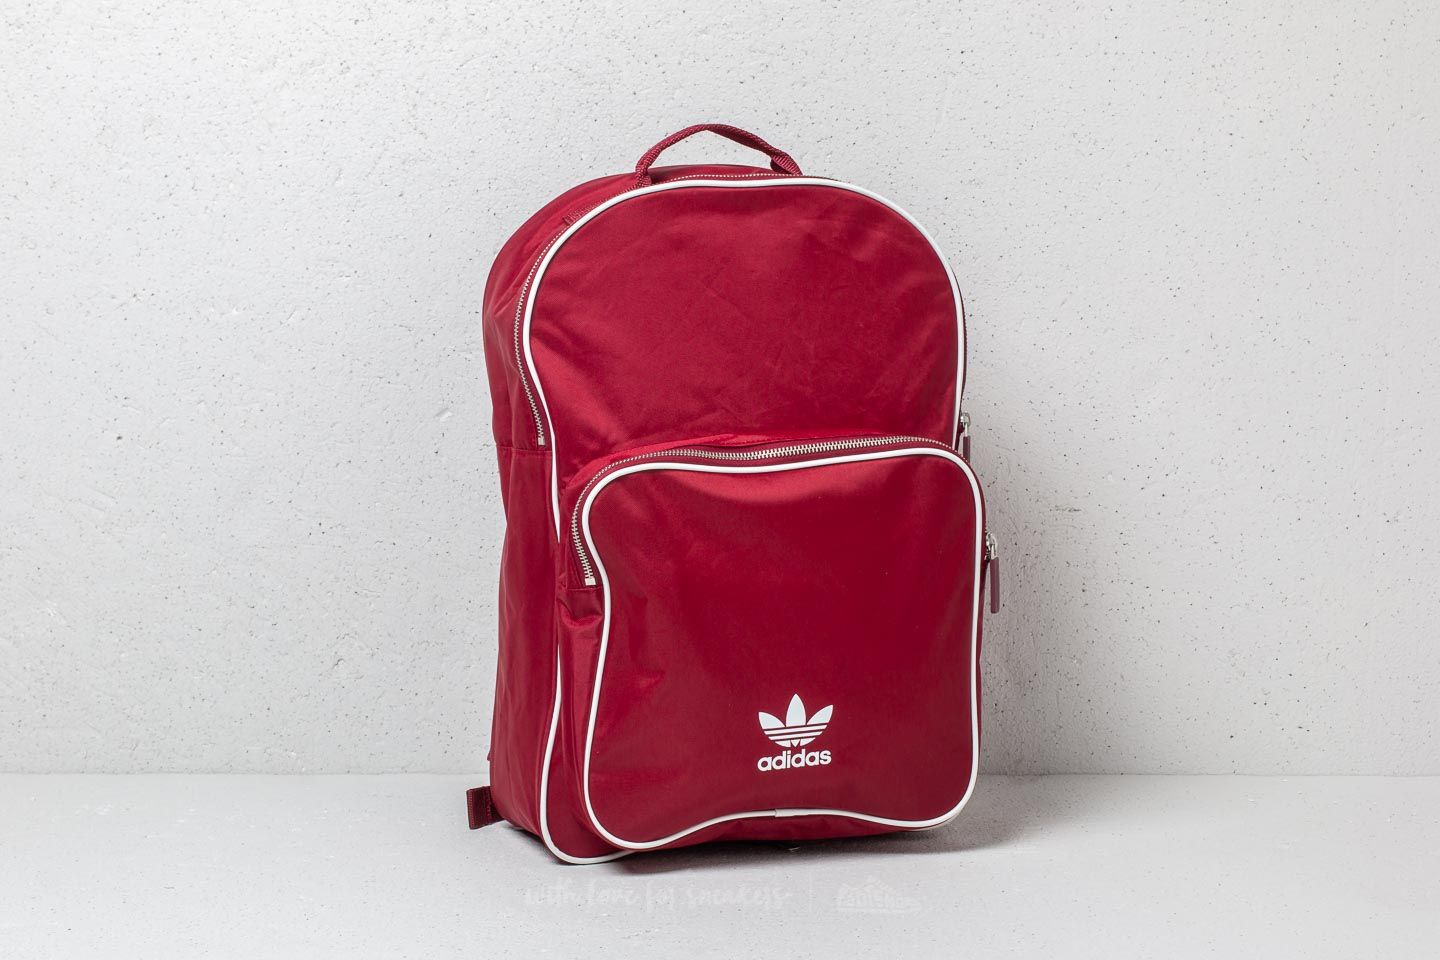 13e68a9d3b74 adidas Classic Adicolor Backpack Collegiate Burgundy at a great price  40  buy at Footshop